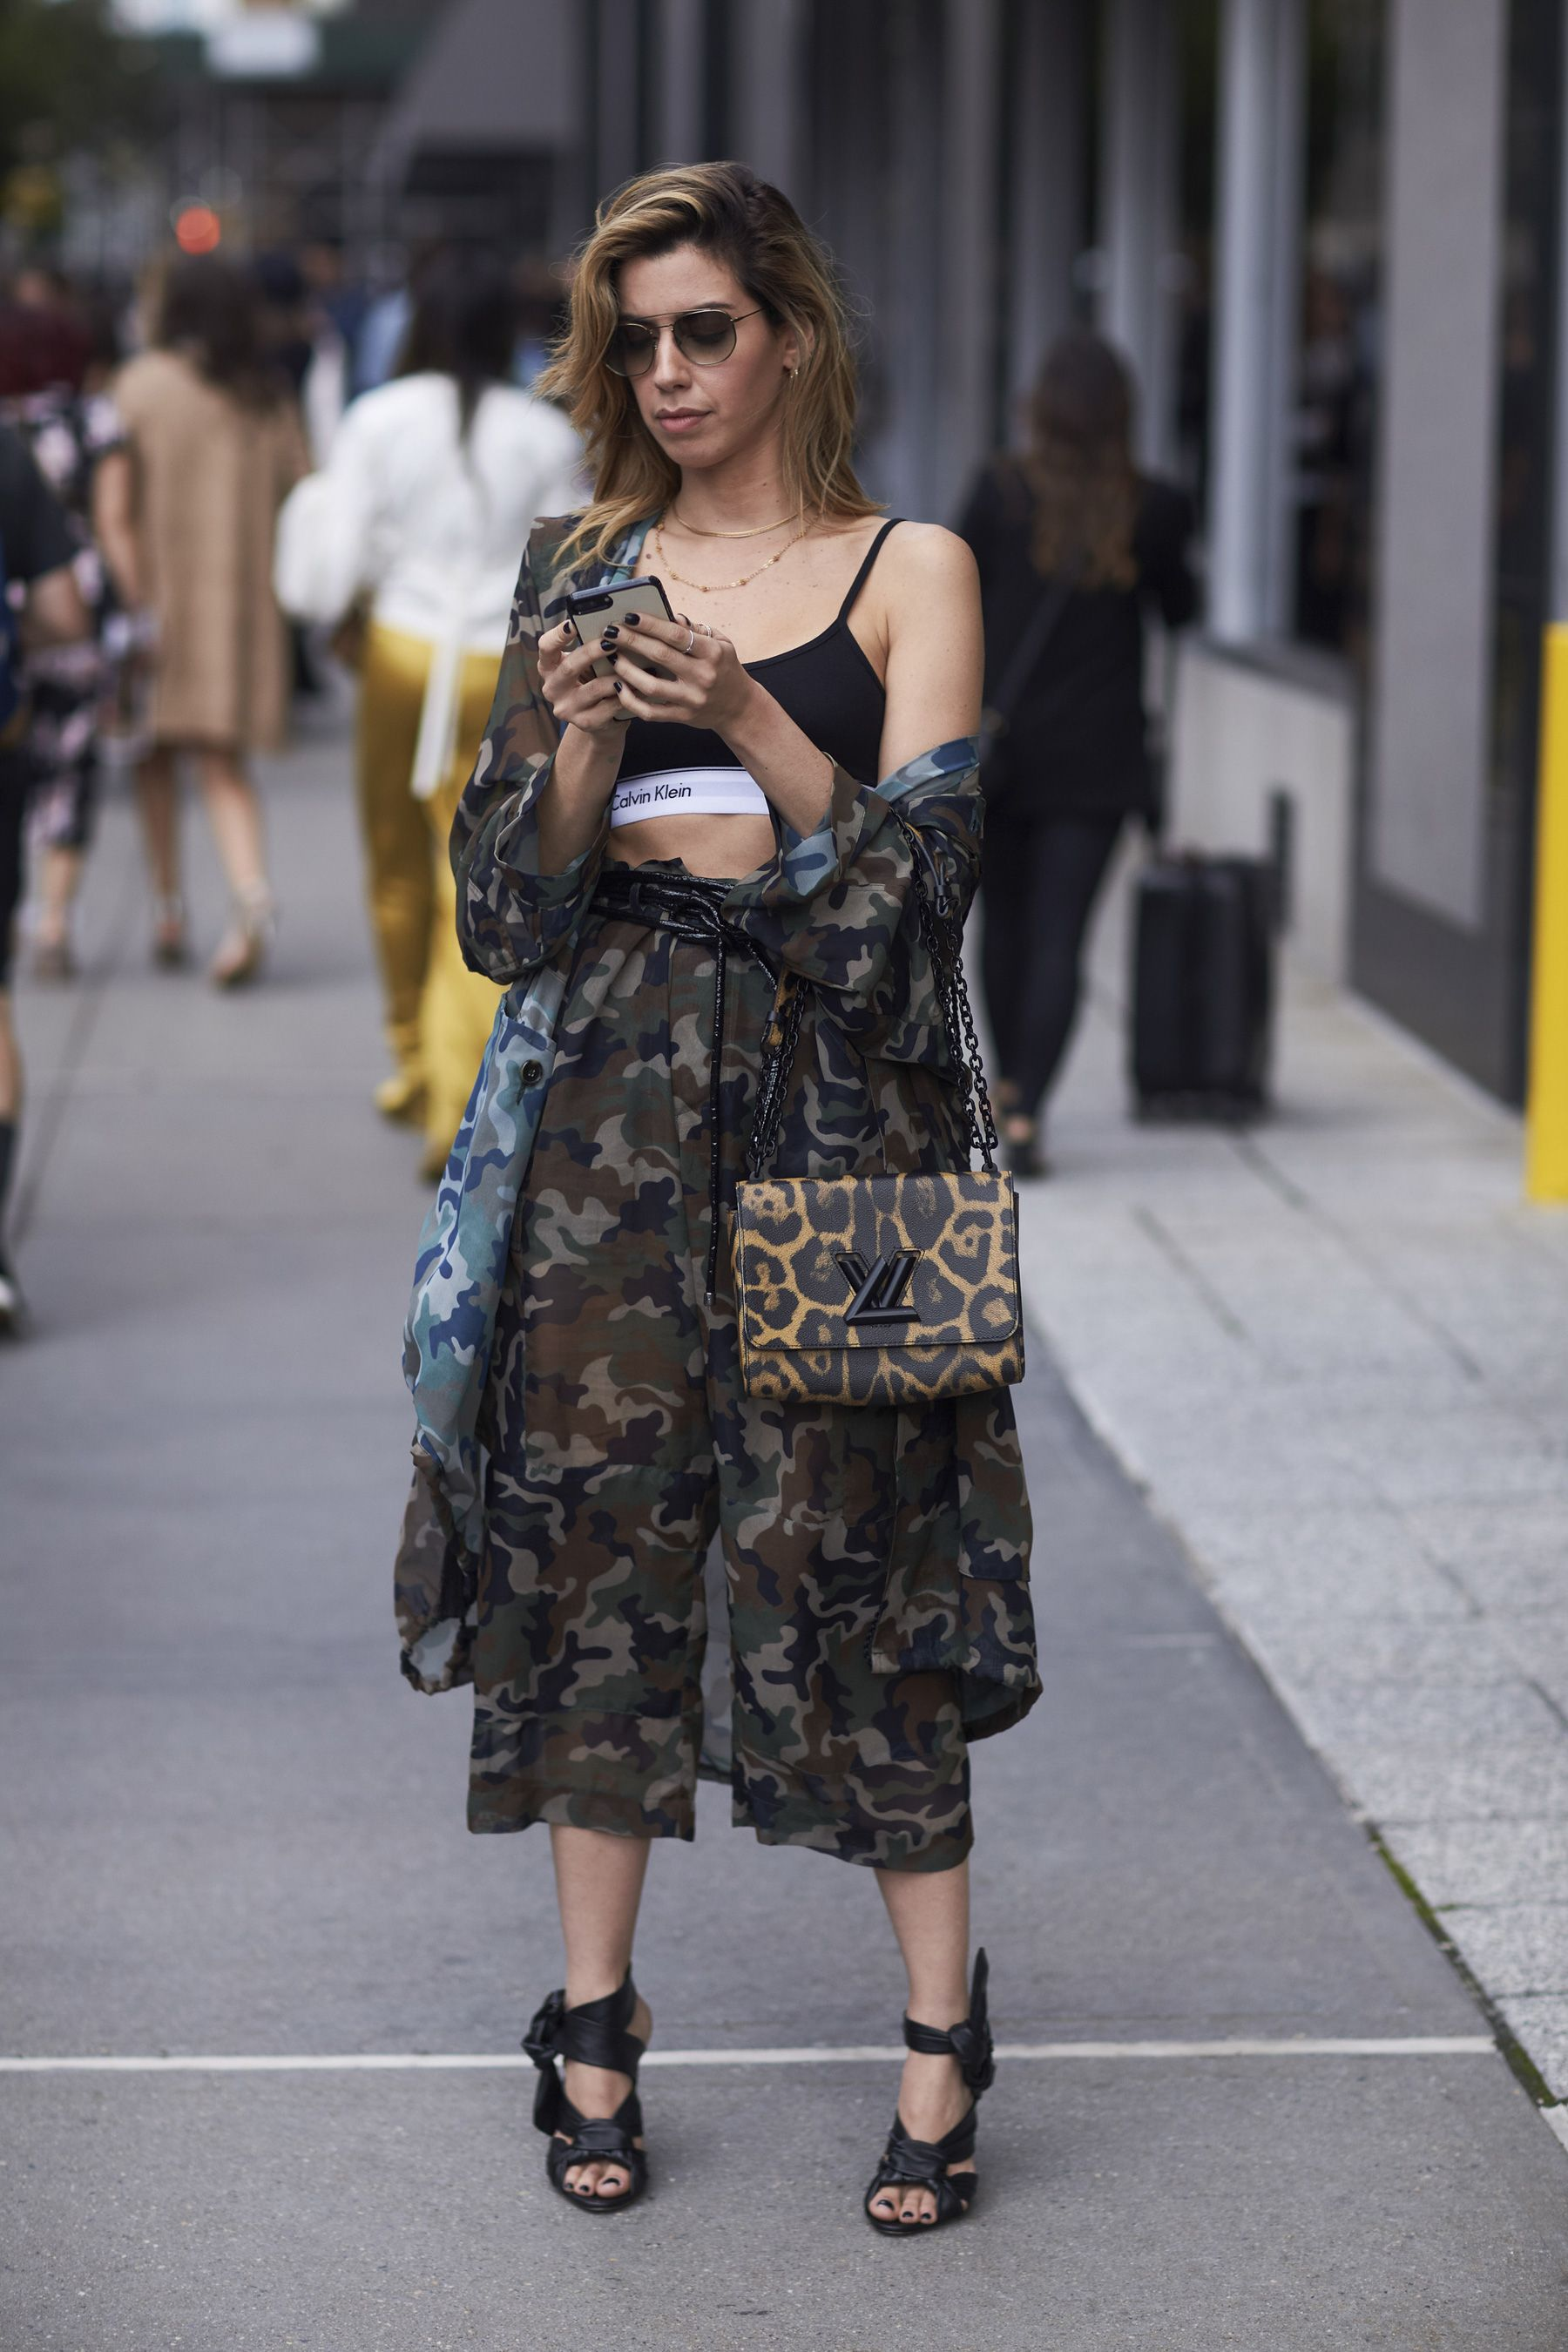 a2fb5723a268 The Best Street Style from New York Fashion Week Street Style Spring 2018